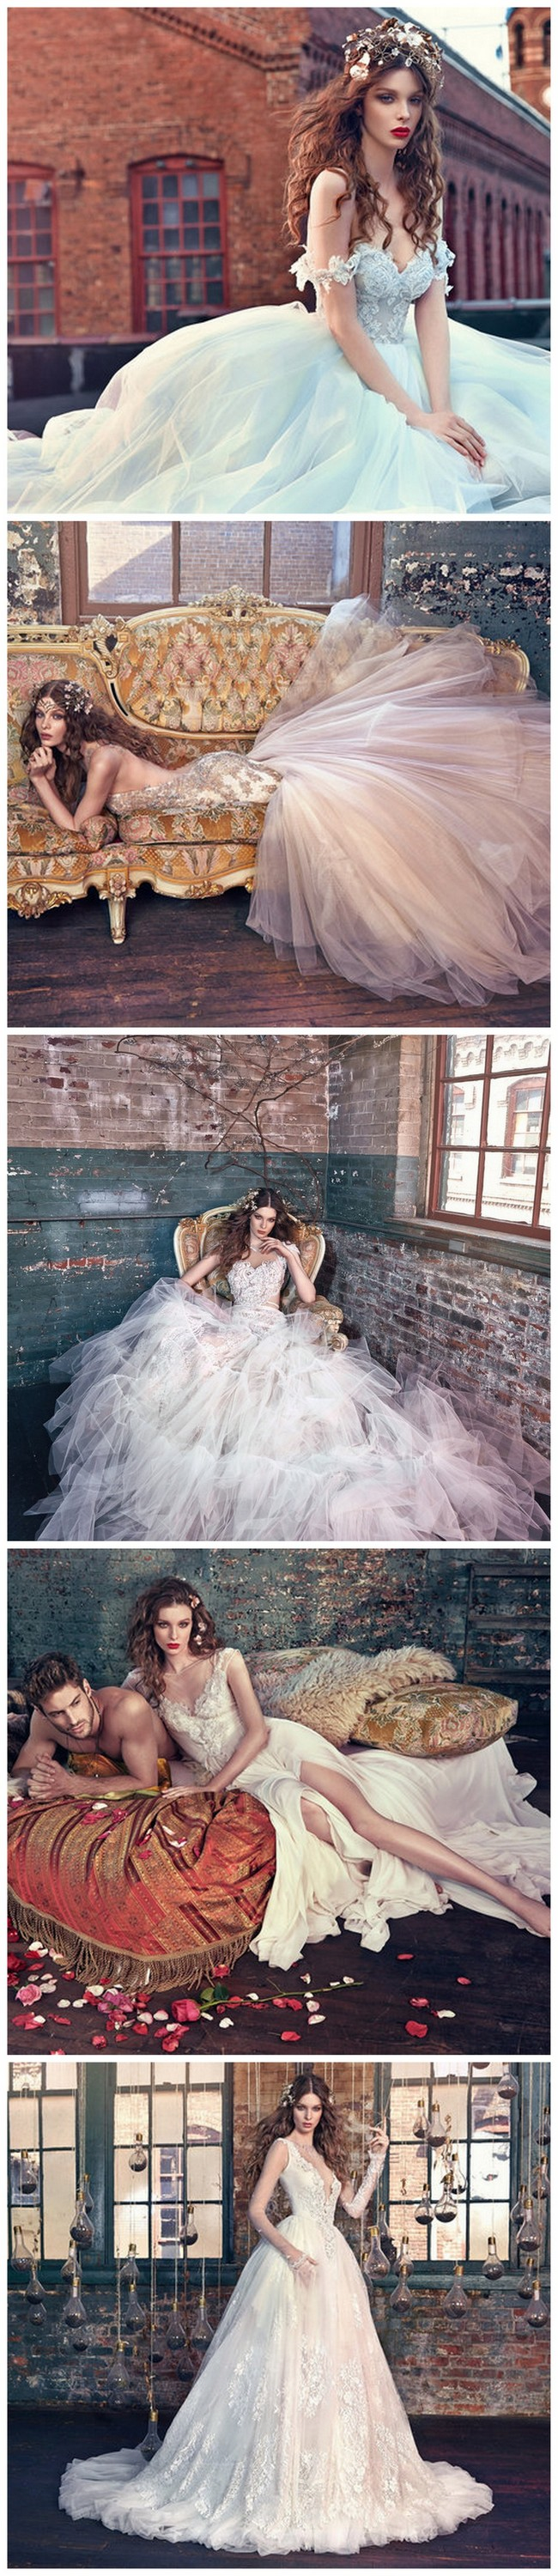 Fairy Tale Wedding Dresses https://confettidaydreams.com/fairy-tale-wedding-dresses/